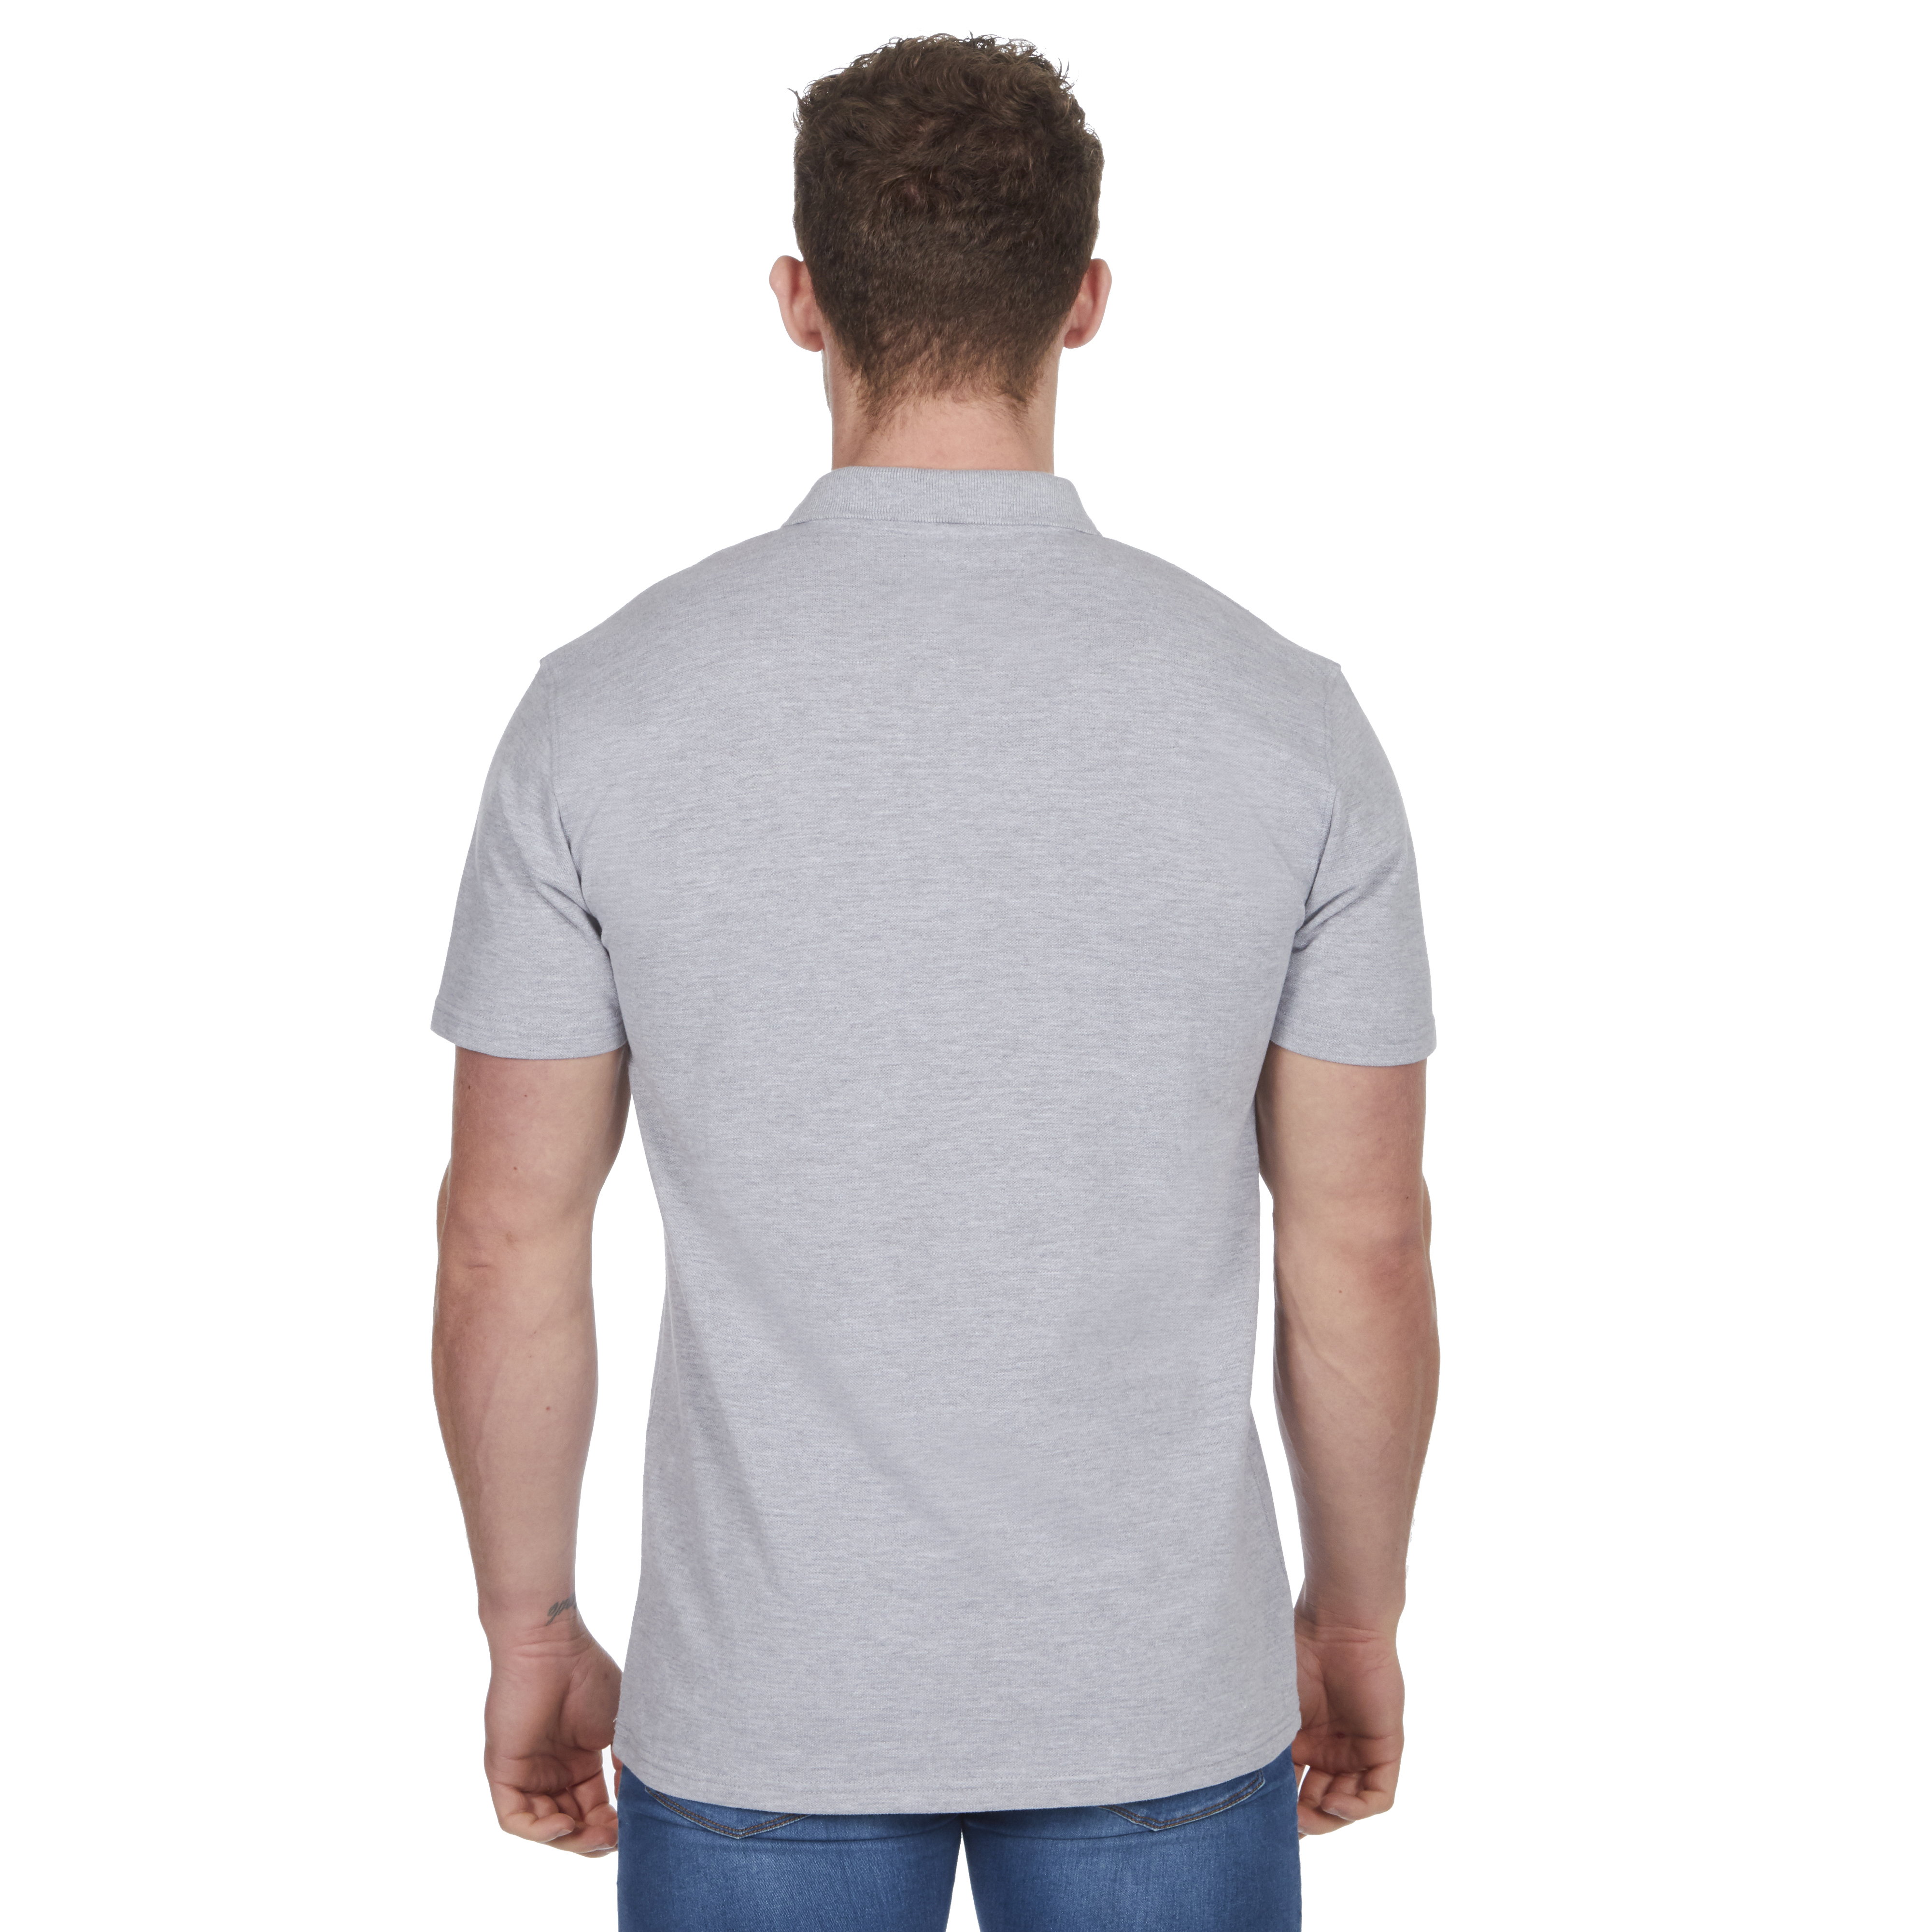 Mens-Classic-Polo-Top-Plus-Size-T-Shirt-Plain-Shirt-Big-And-Tall-Short-Sleeve thumbnail 9